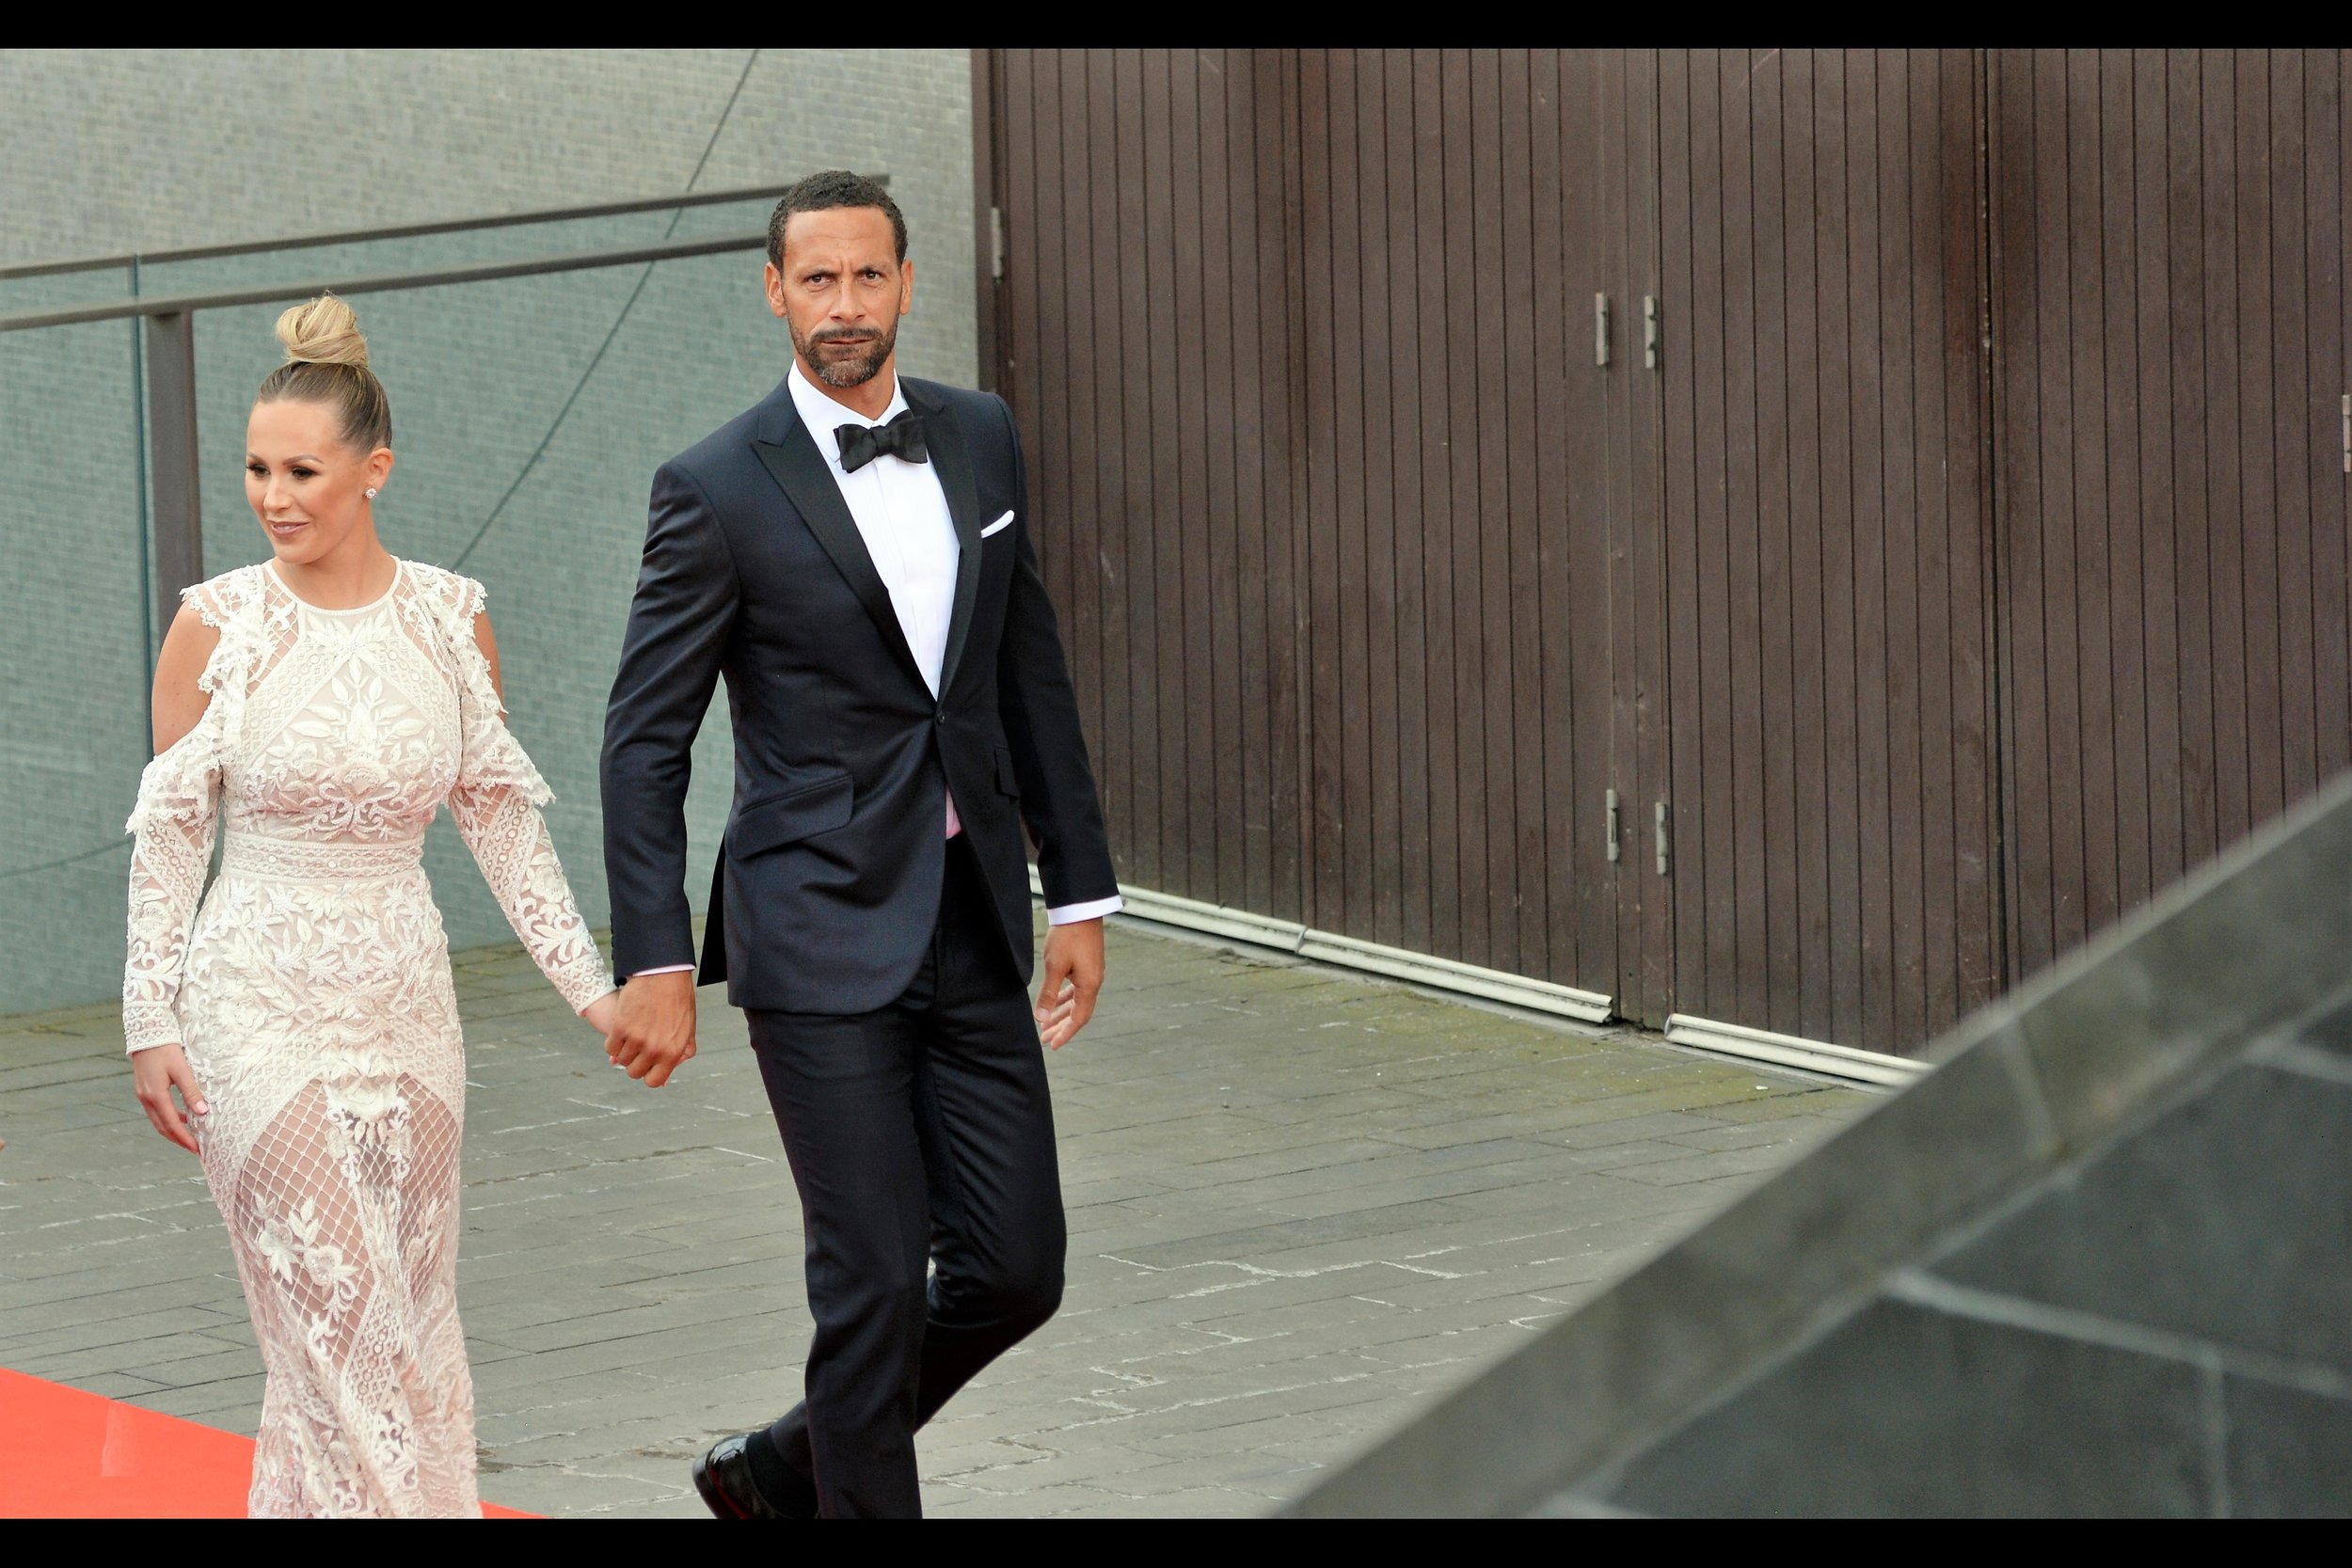 Rio Ferdinand is (I believe) a former English football (soccer) captain.  (edited to add : he won / was seen holding a Bafta for 'Single Documentary' for 'Rio Ferdinand : Being Mum and Dad')